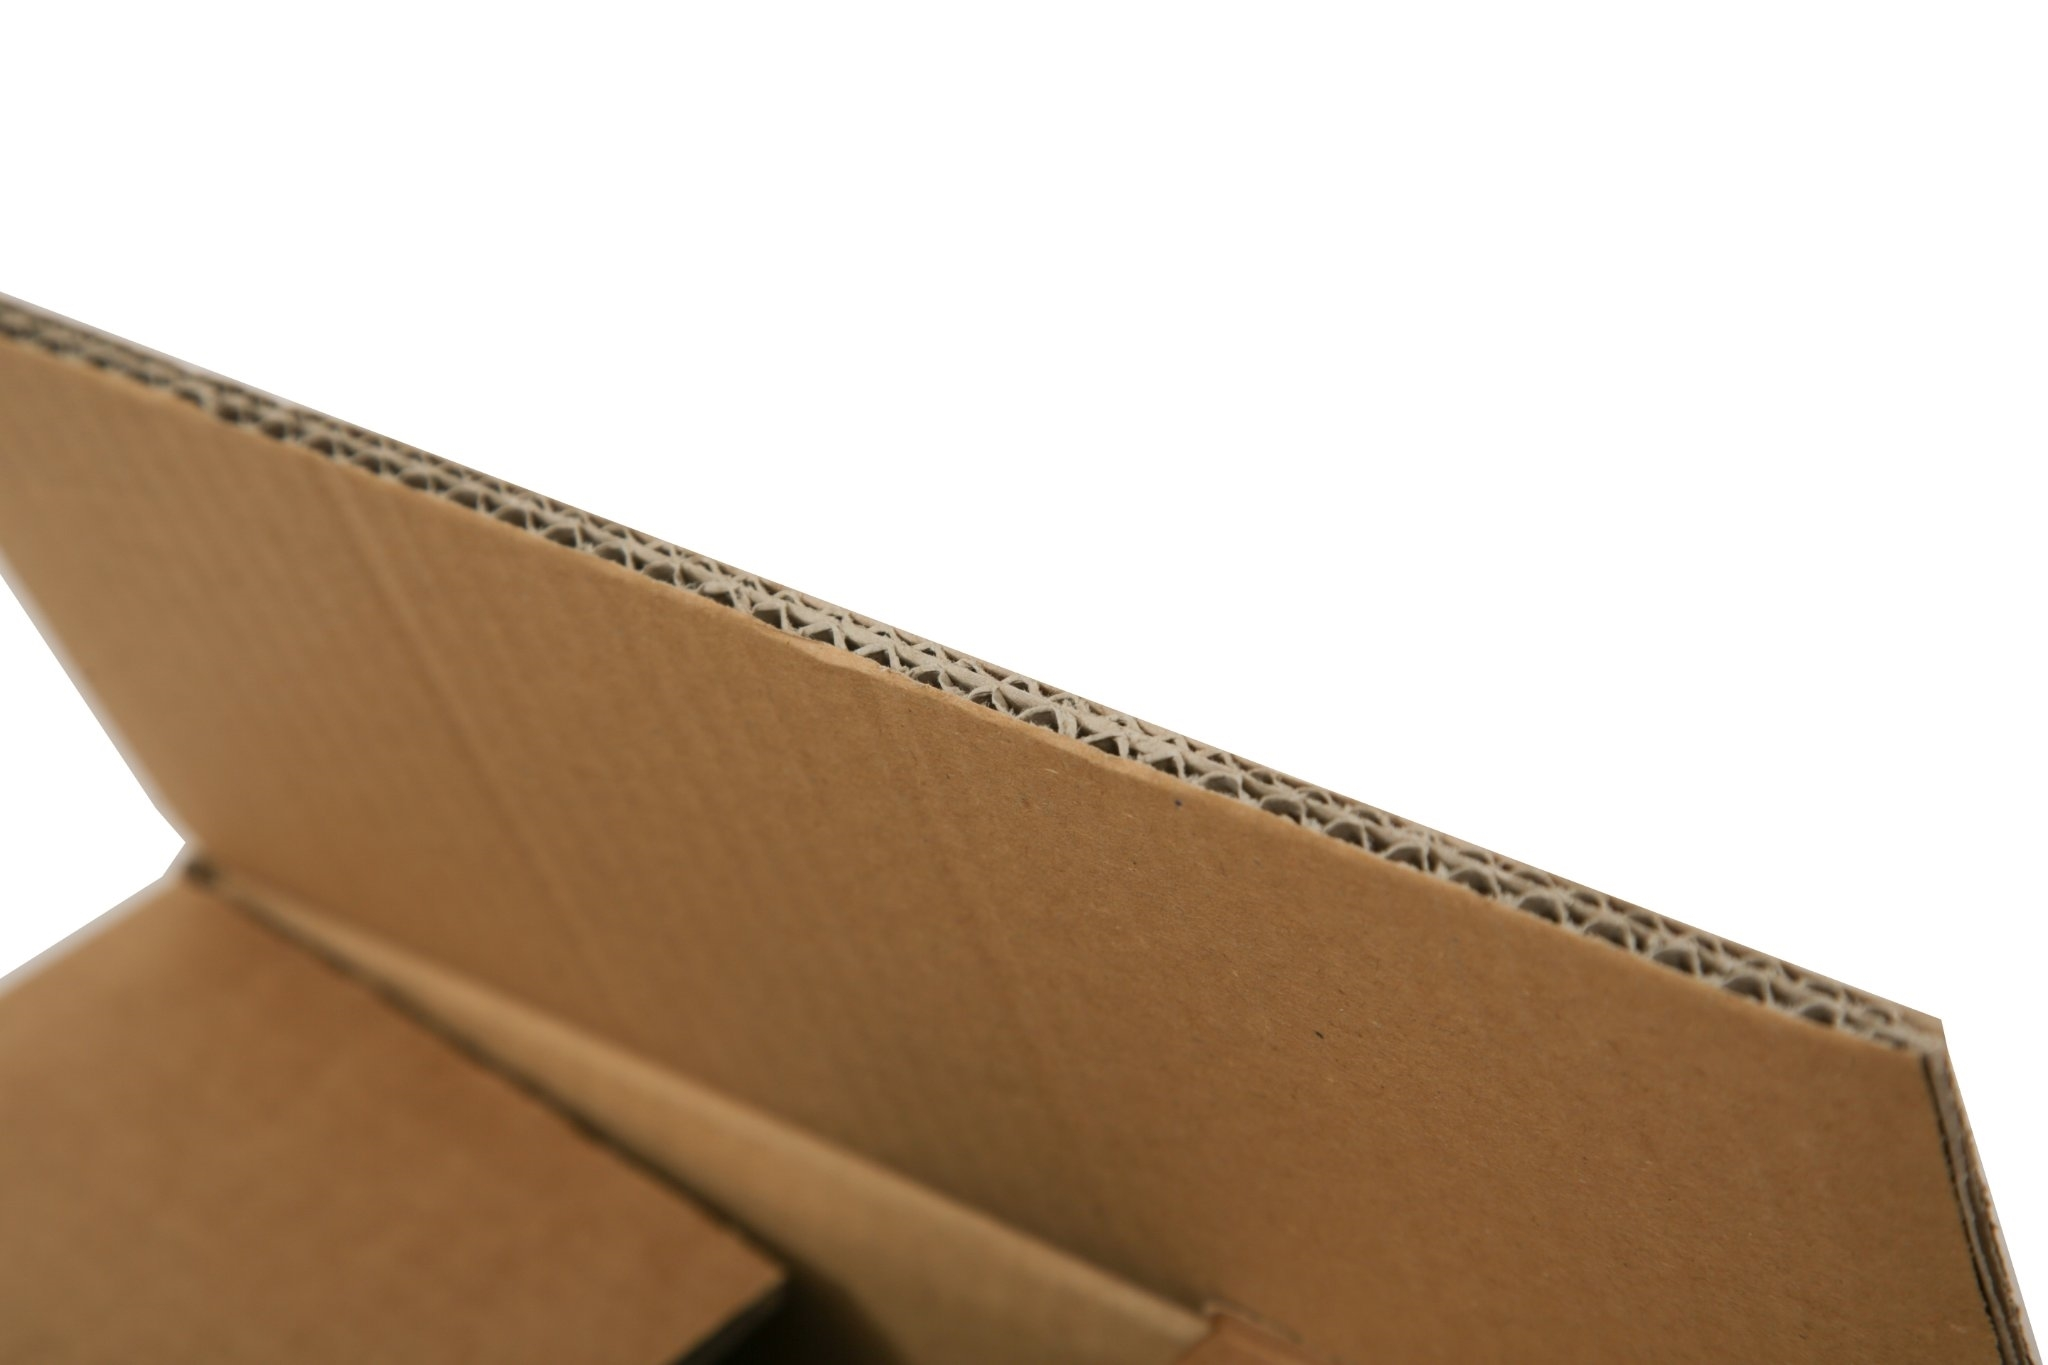 457 x 317 x 381mm Double Wall Cardboard Boxes - 5